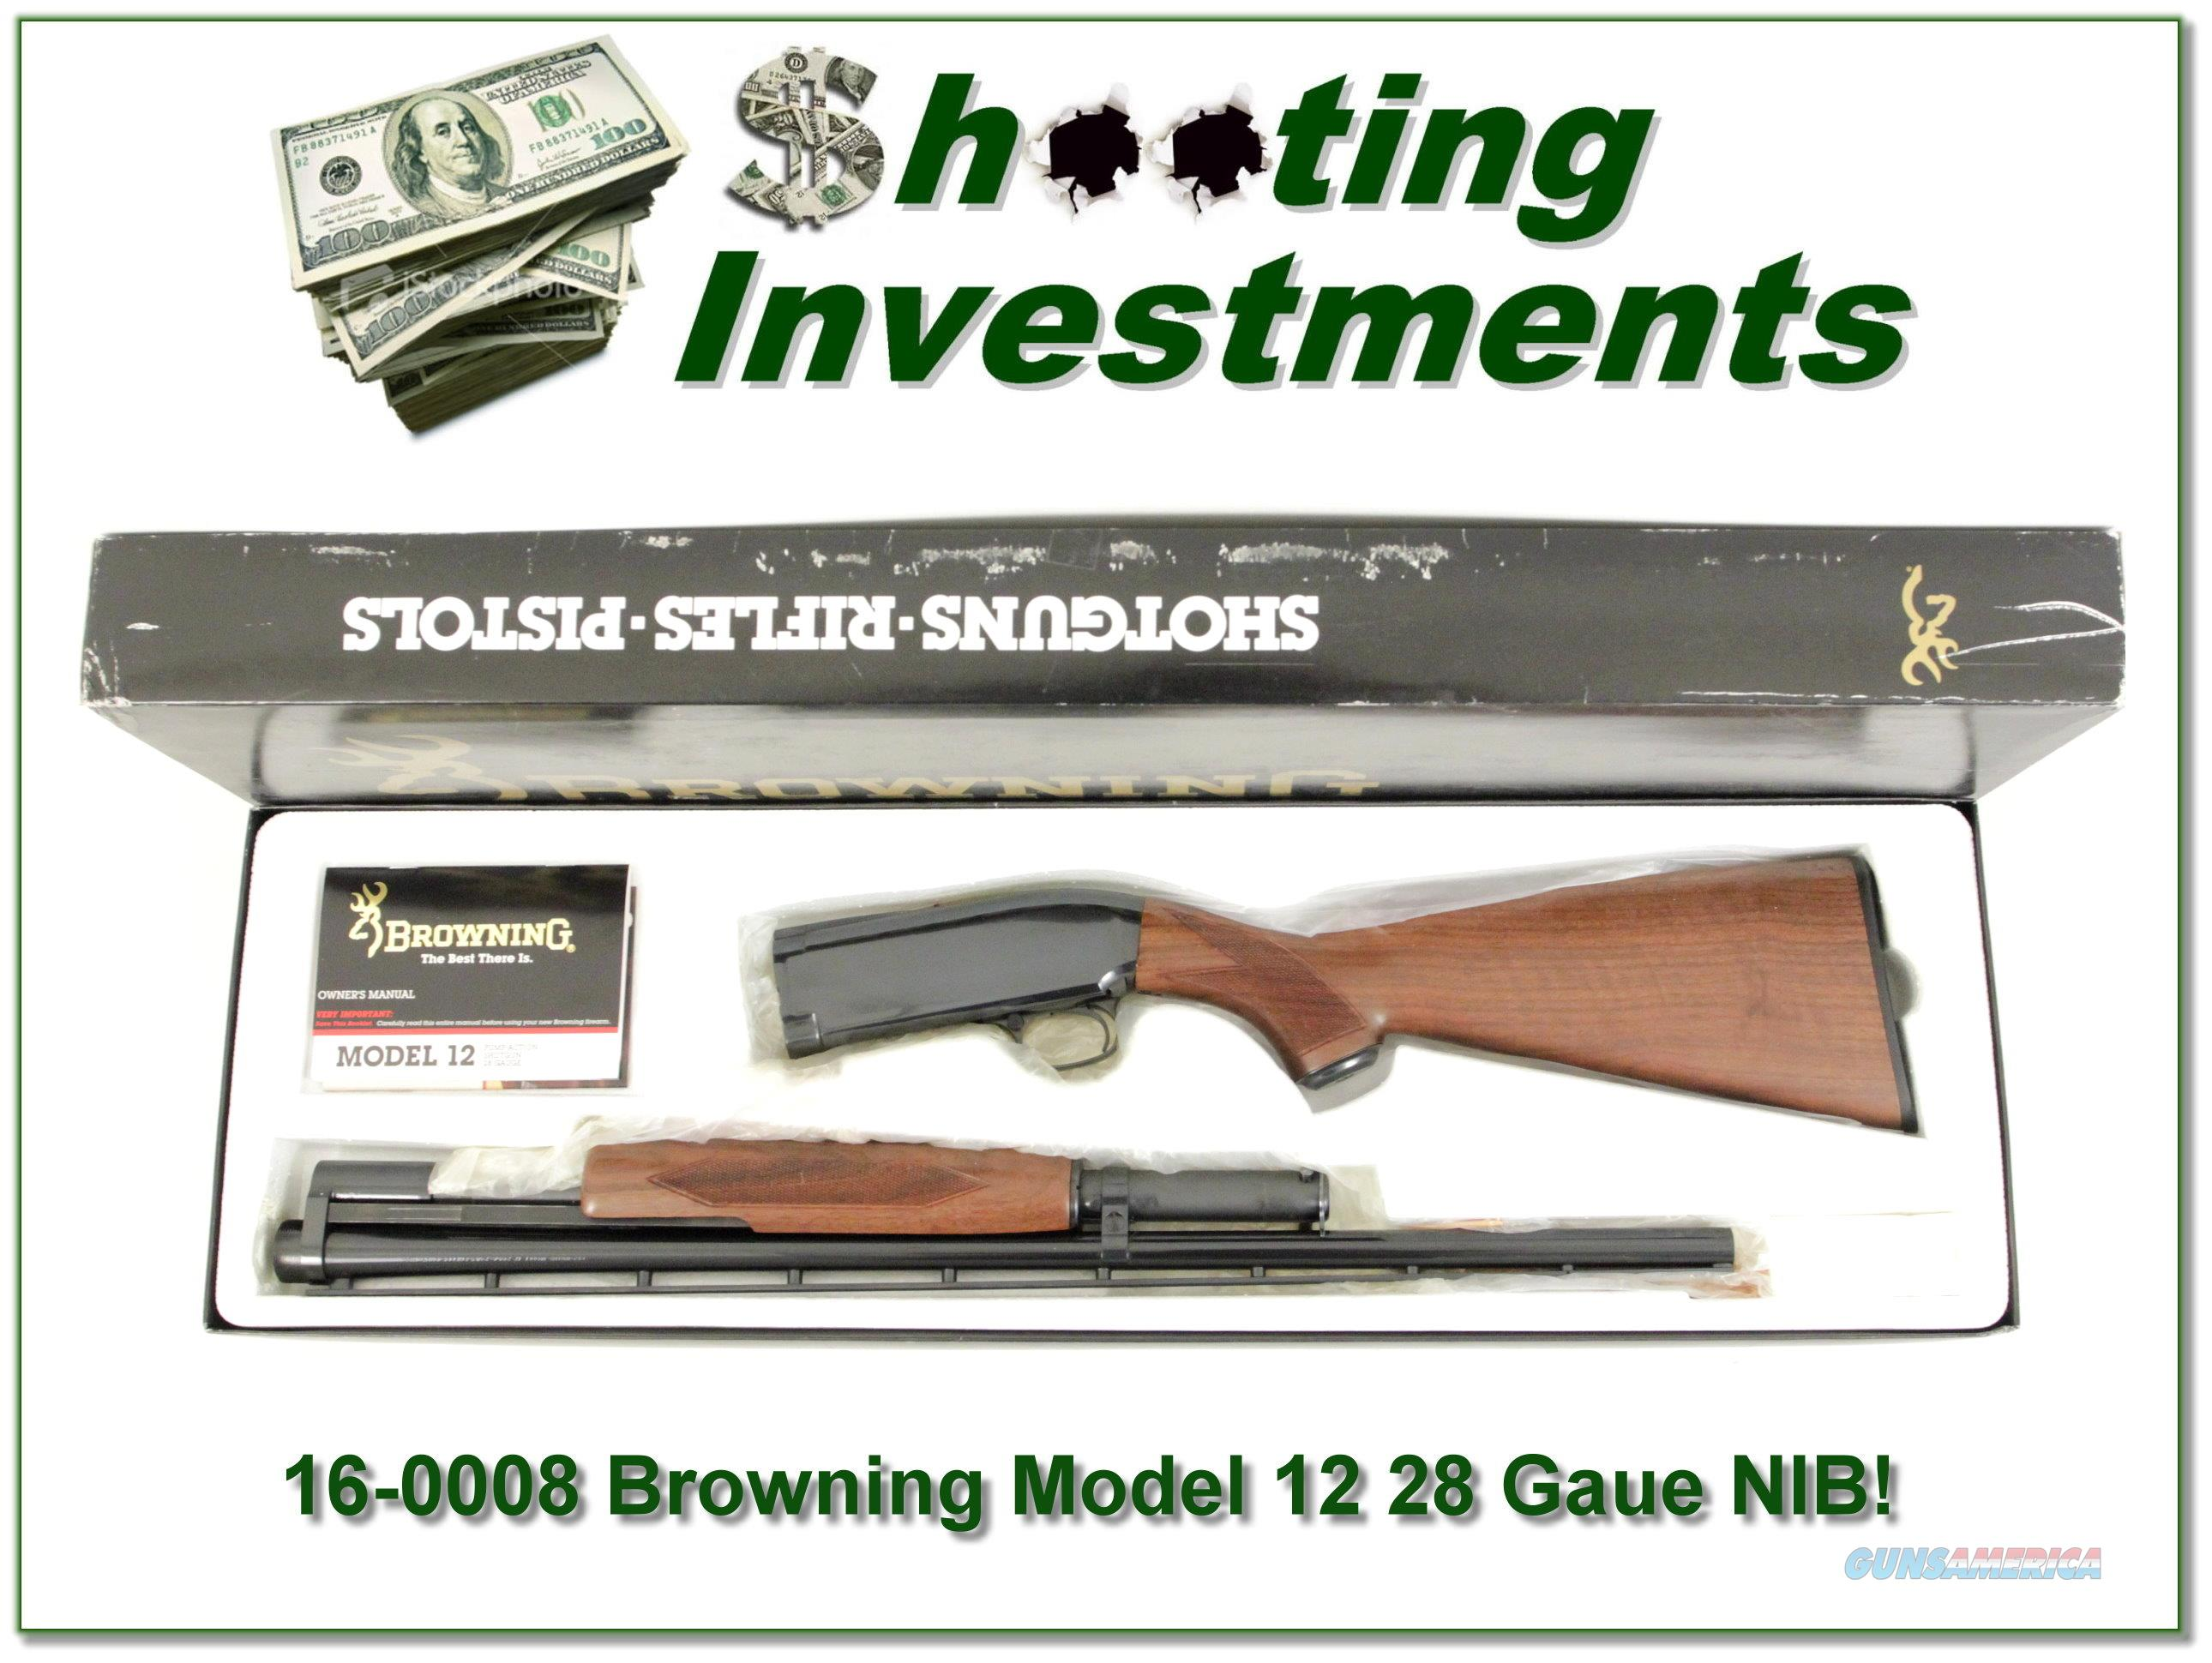 Browning Model 12 28 Gauge NEW in BOX!  Guns > Shotguns > Browning Shotguns > Pump Action > Hunting